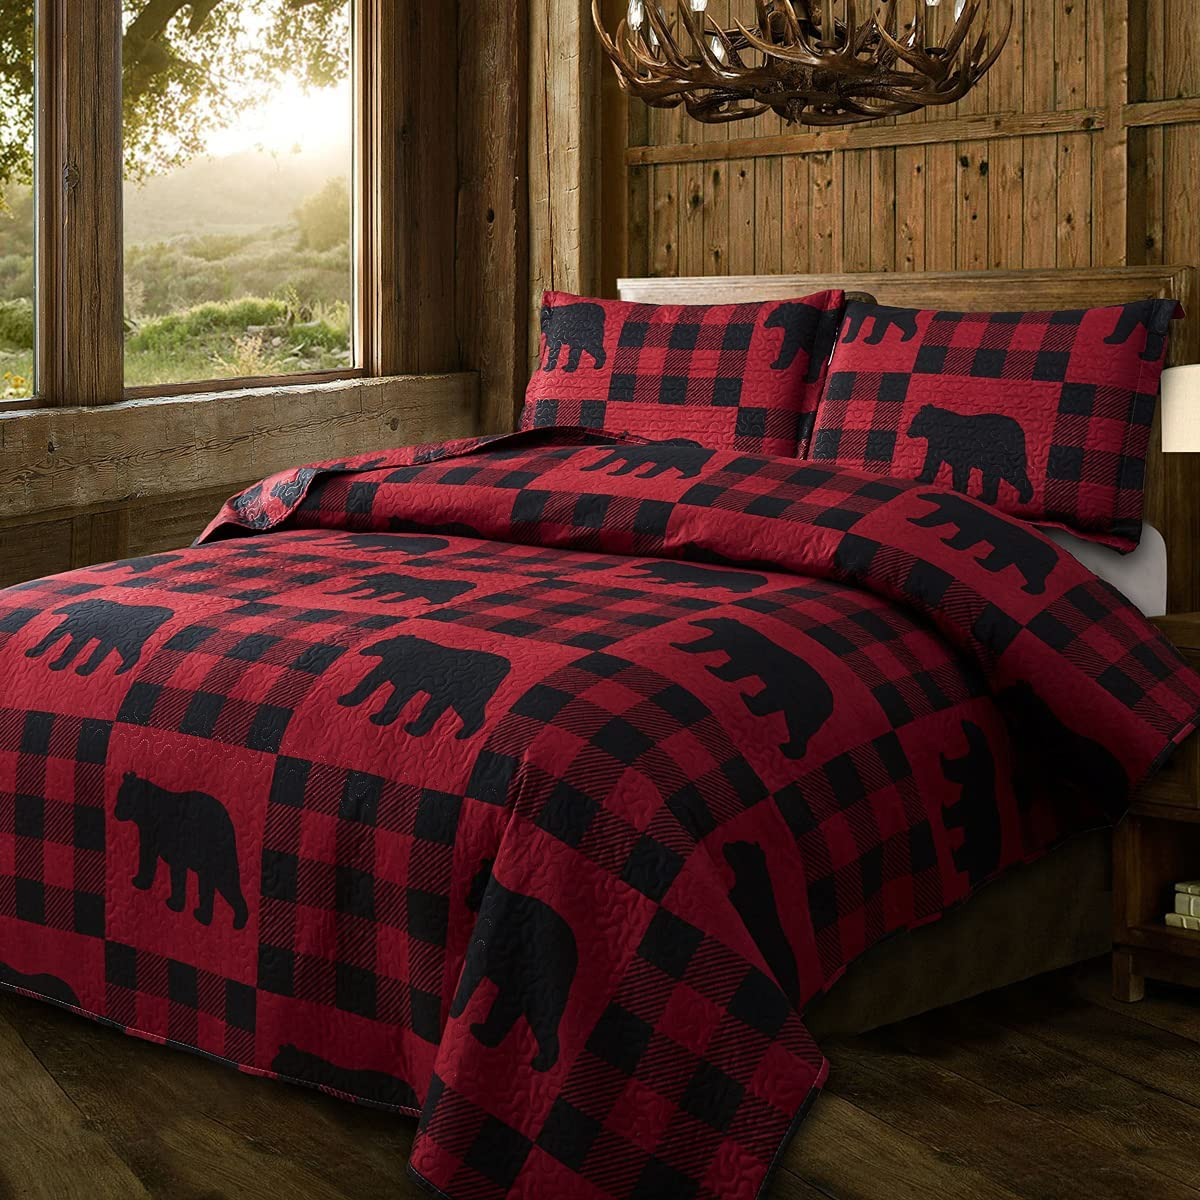 Quilt Set Queen Size Rustic Bedding Black Plaid Buffalo Lodg Max 80% OFF Red Reservation